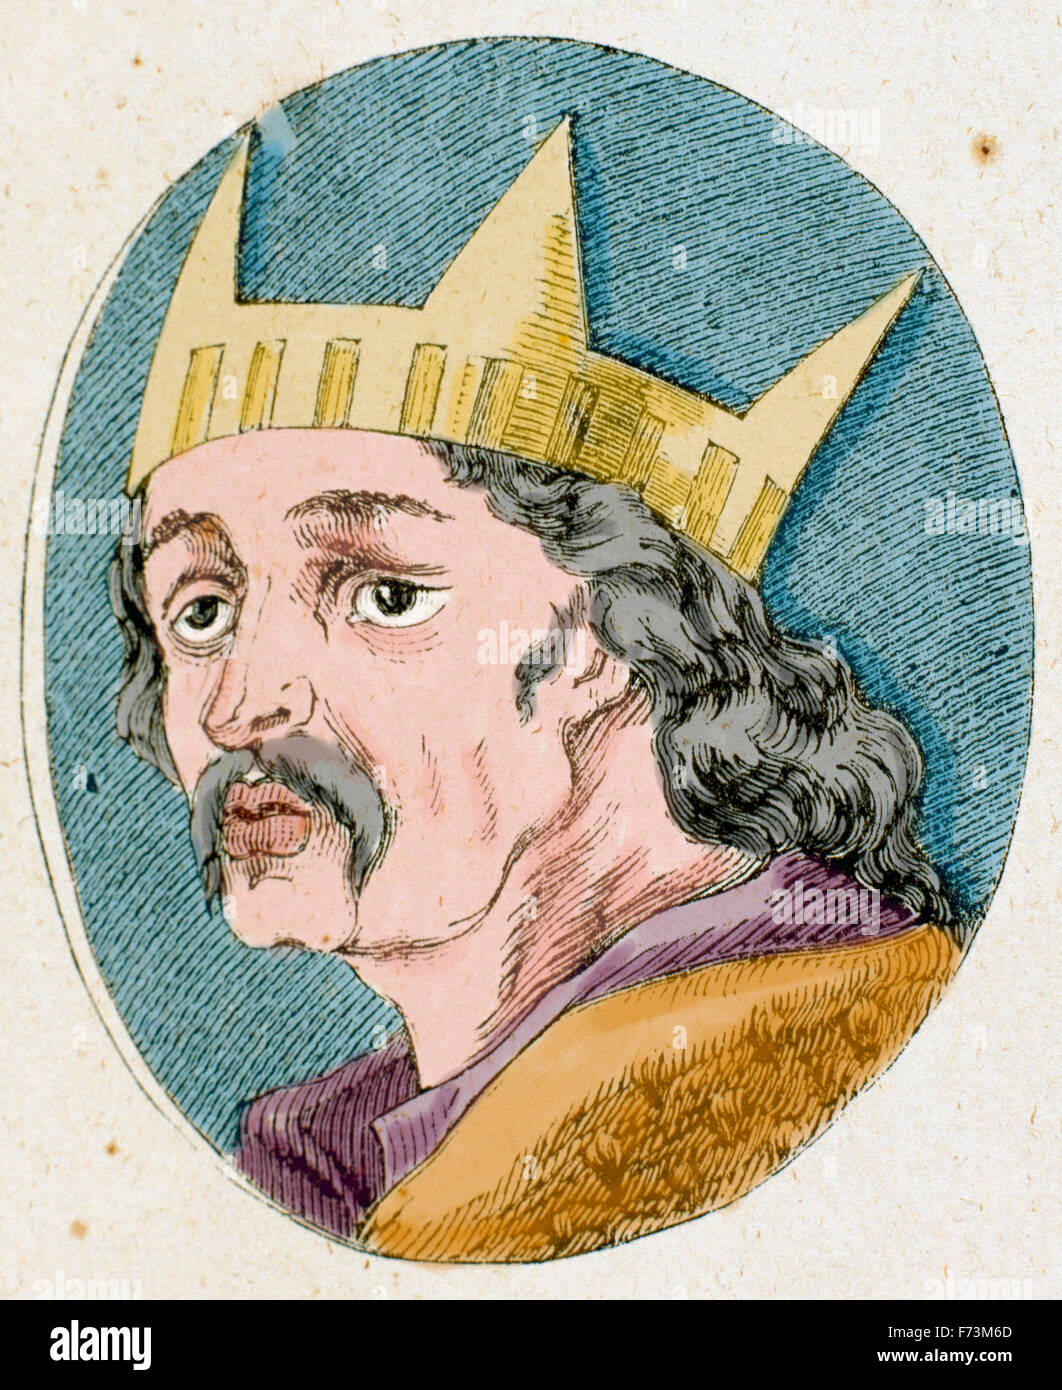 Alfons VI of Leon and Castile (1040-1109). Nicknamed The Brave or the Valiant. Portrait. Engraving. Colored. Stock Photo